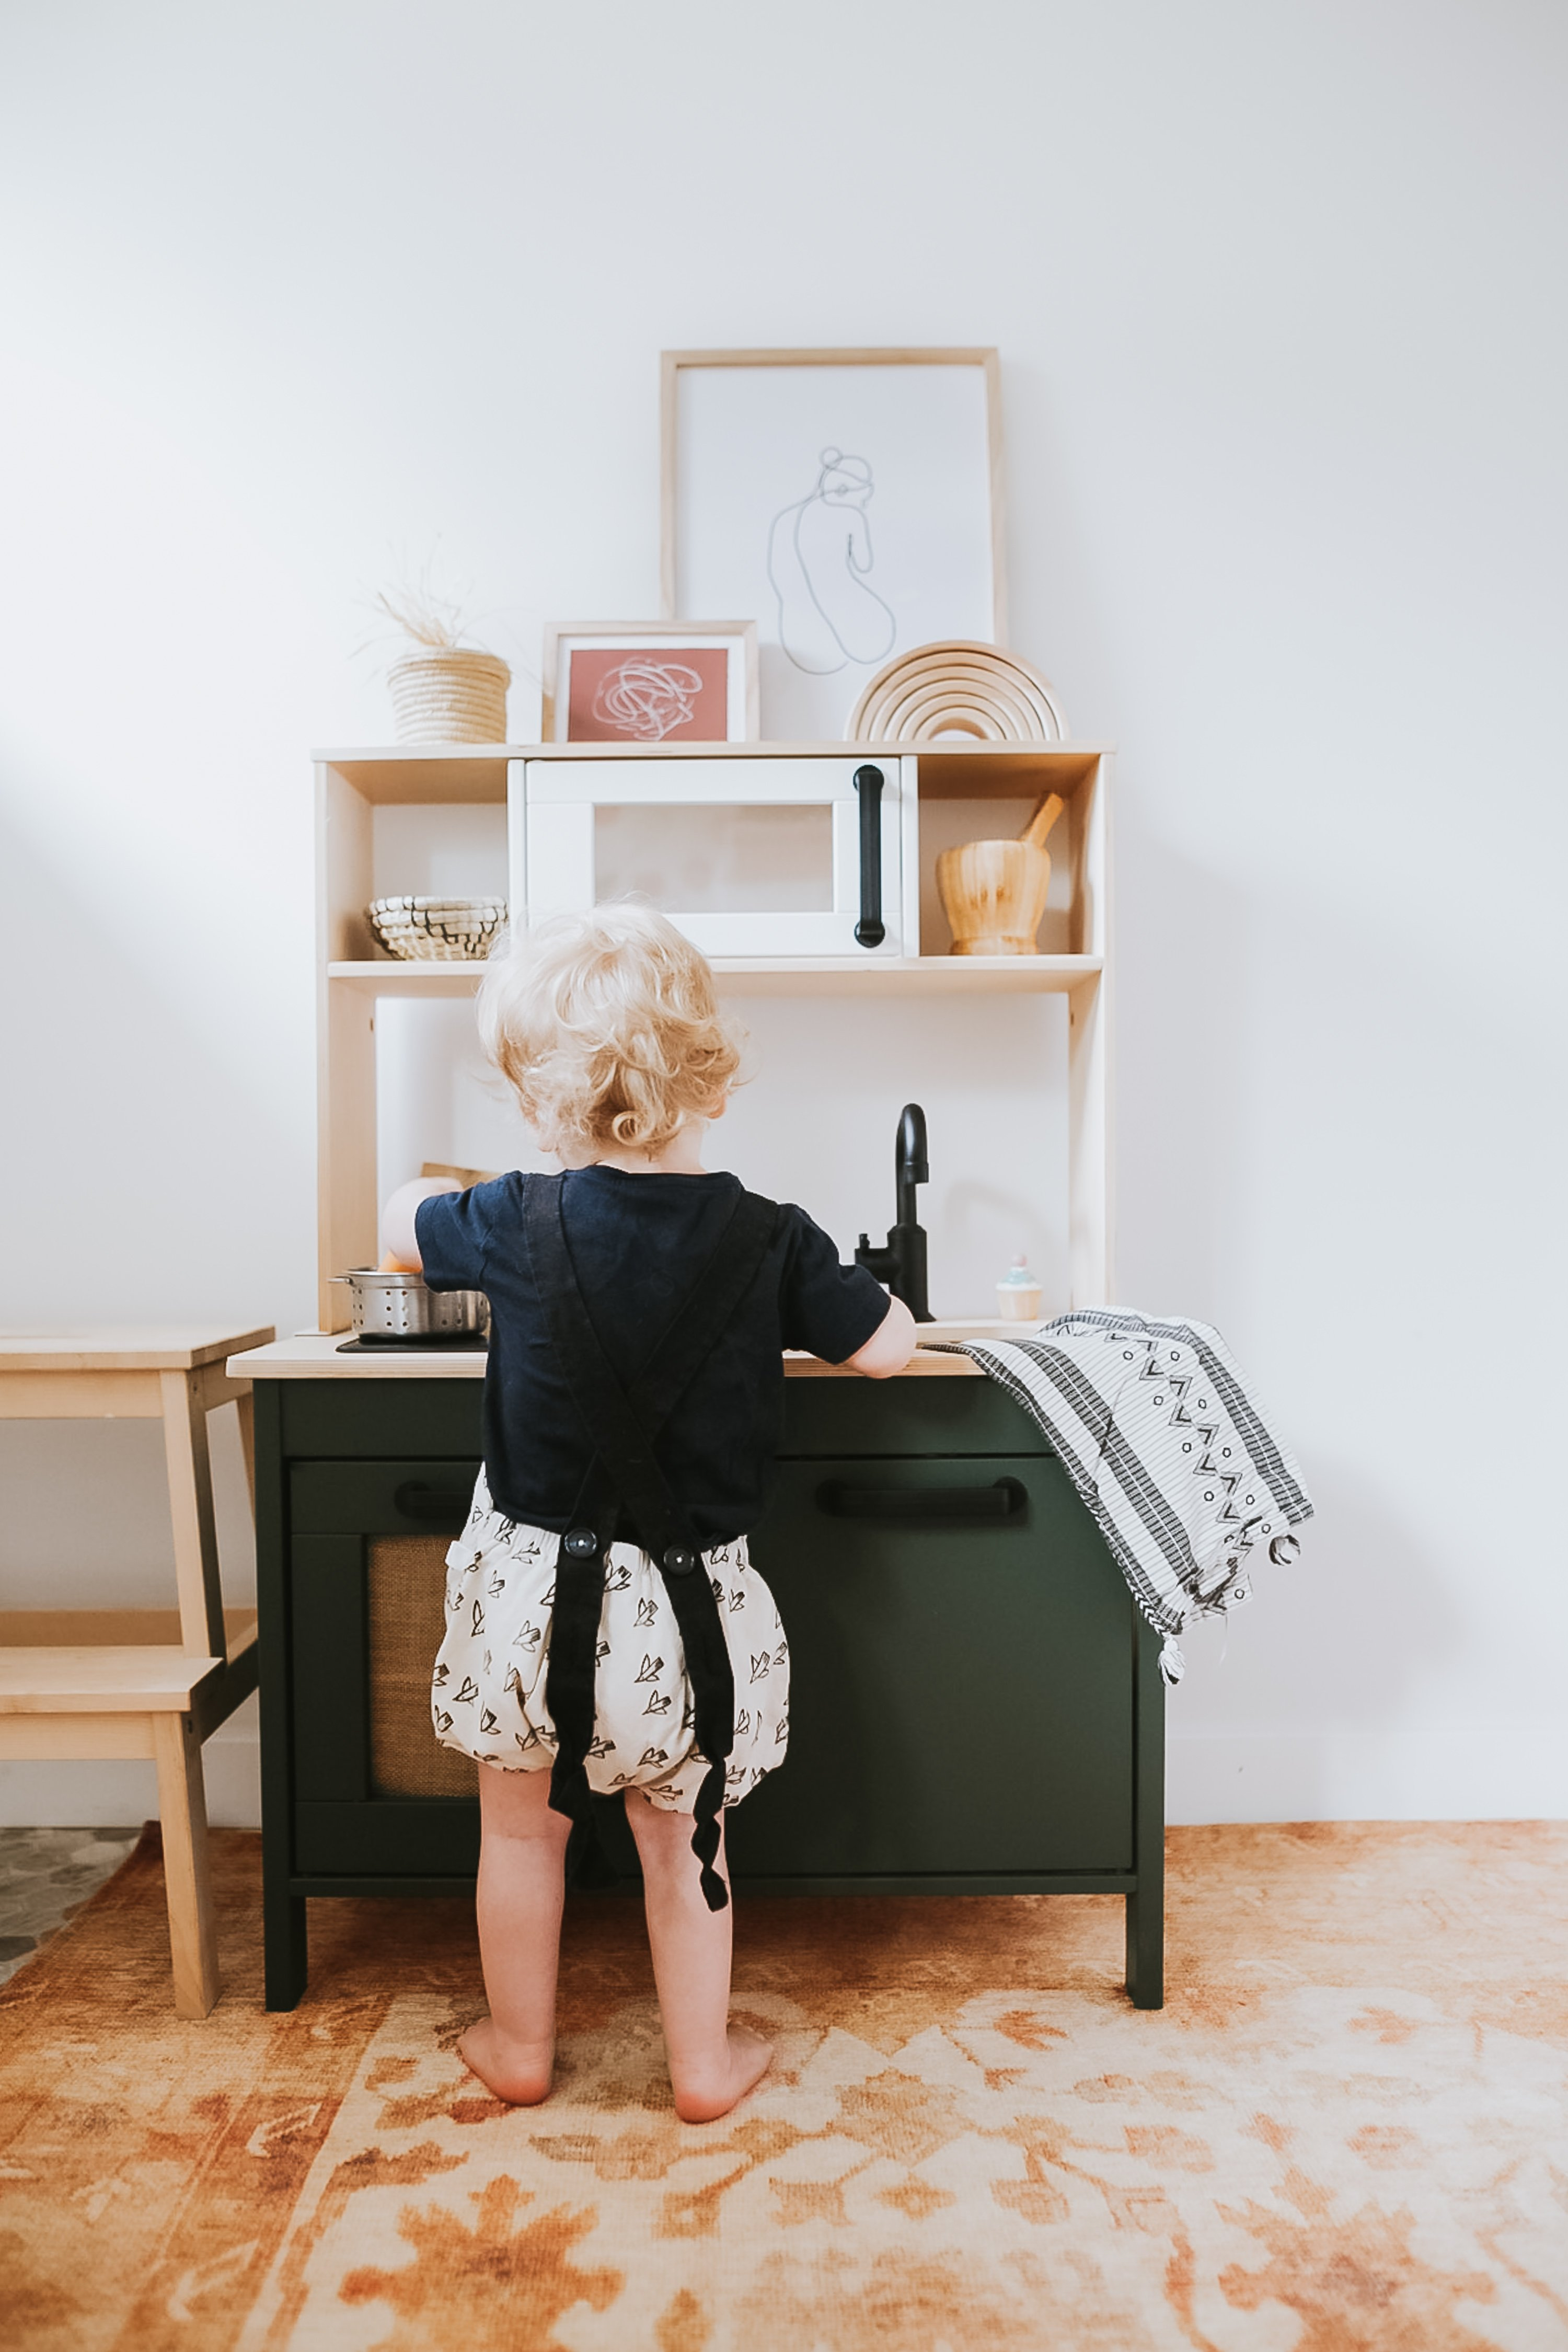 Ikea Kids Kitchen Hack. How I refinished our DUKTIG Play Kitchen for free with paints I already had on hand and turned it into a modern kitchen. Easy DIY!